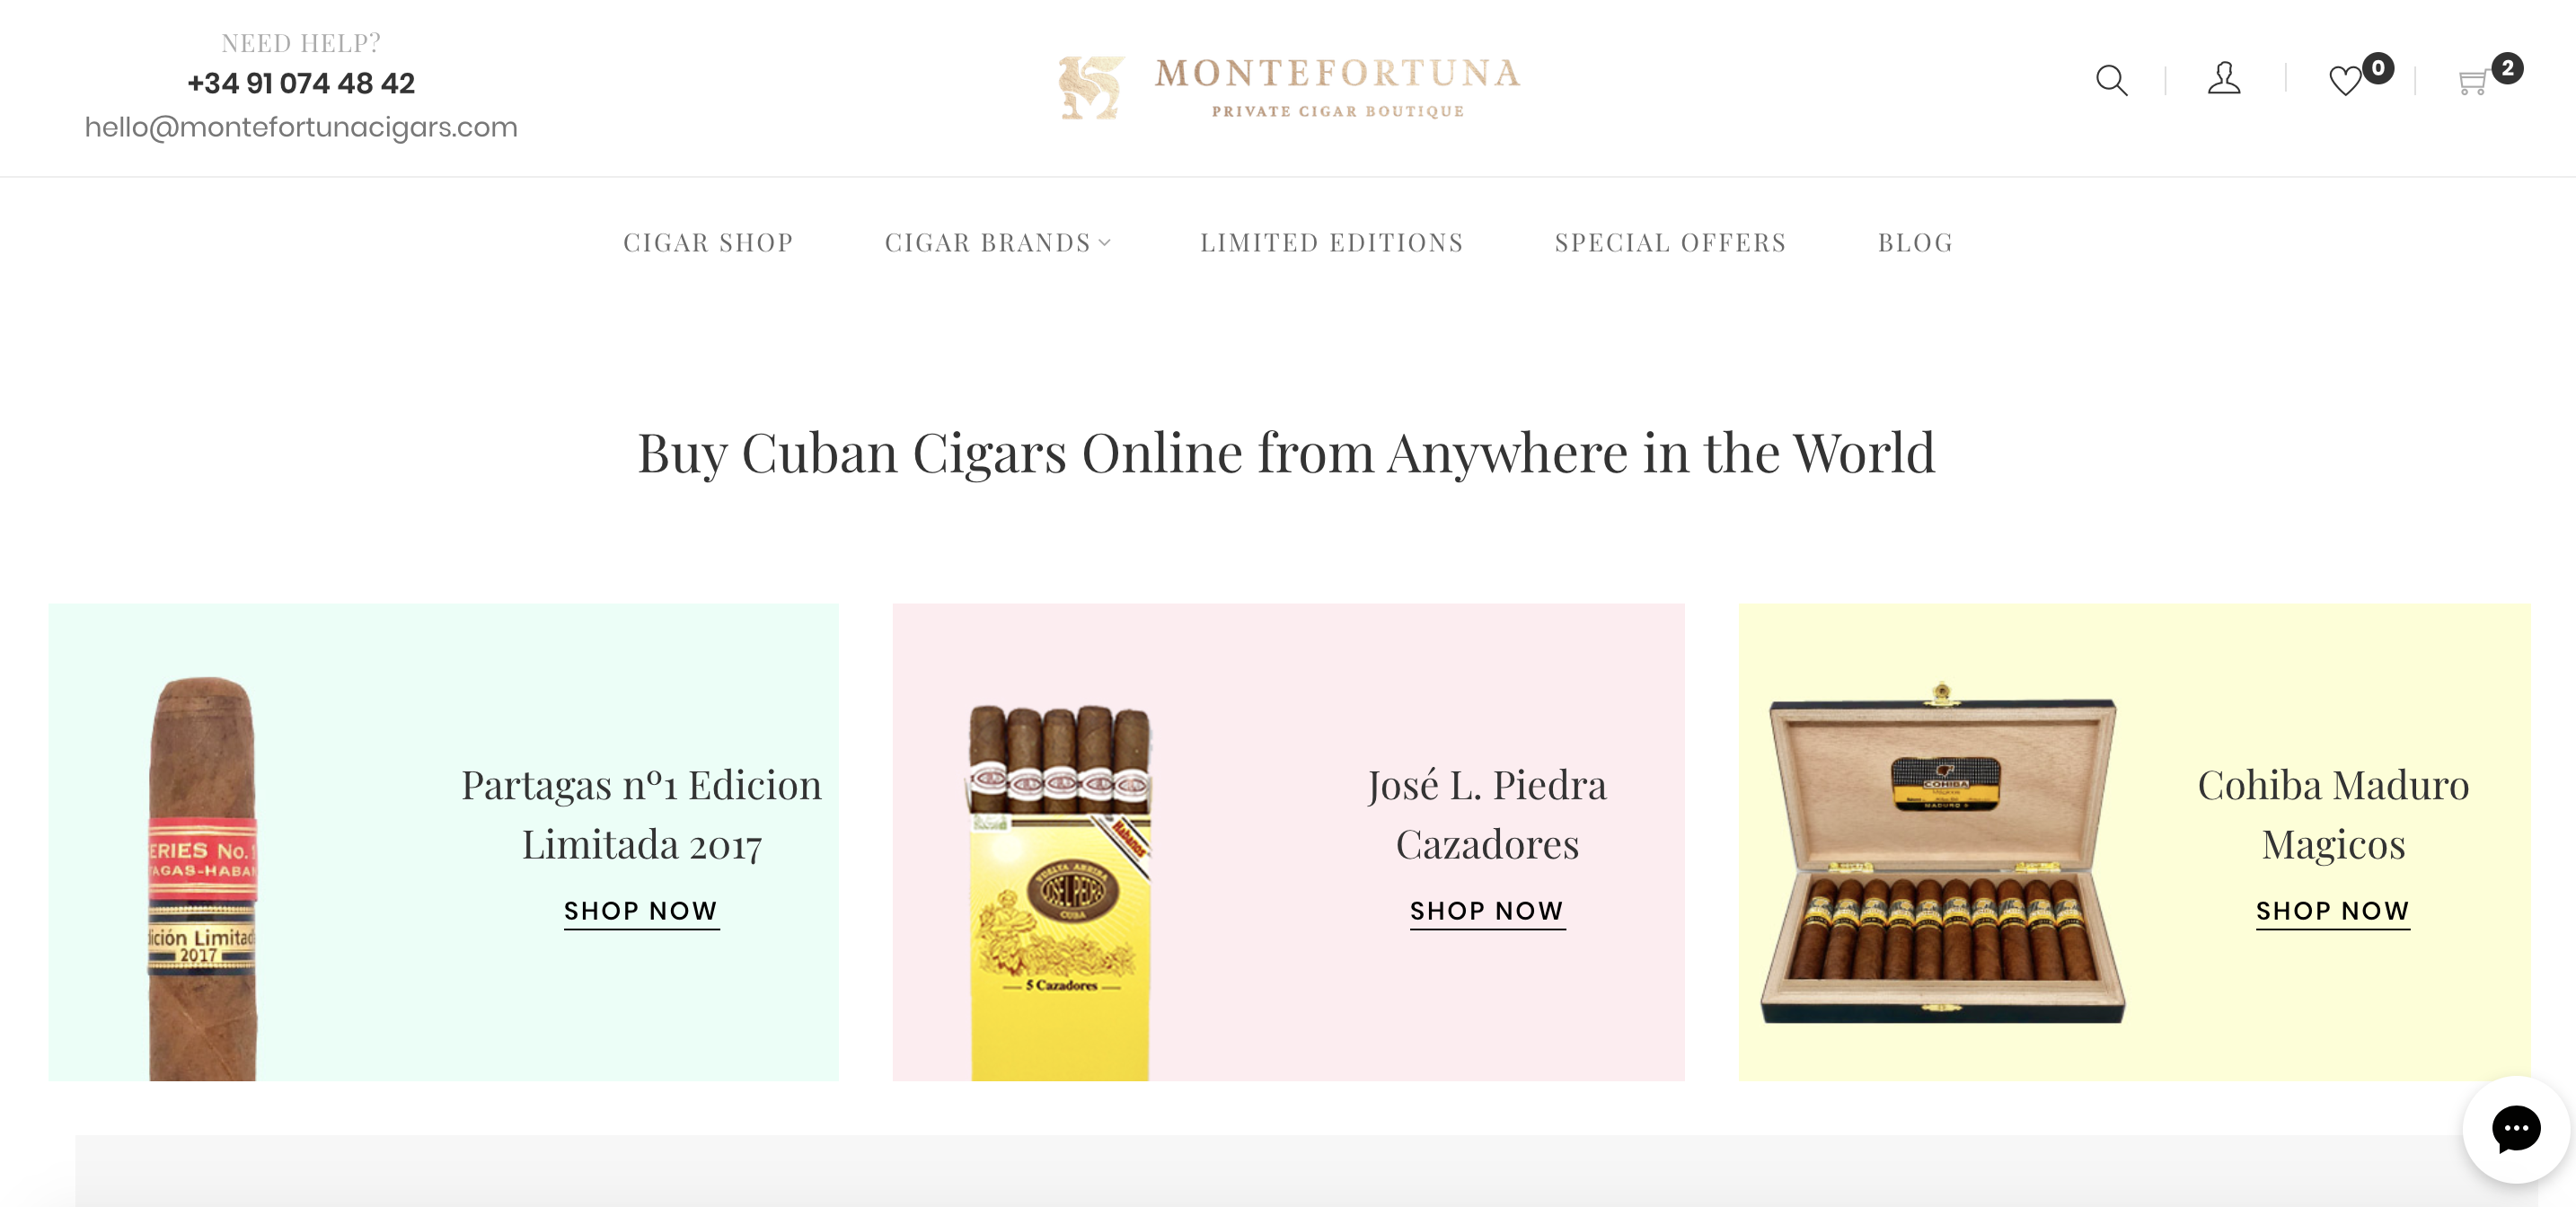 Montefortuna cigars